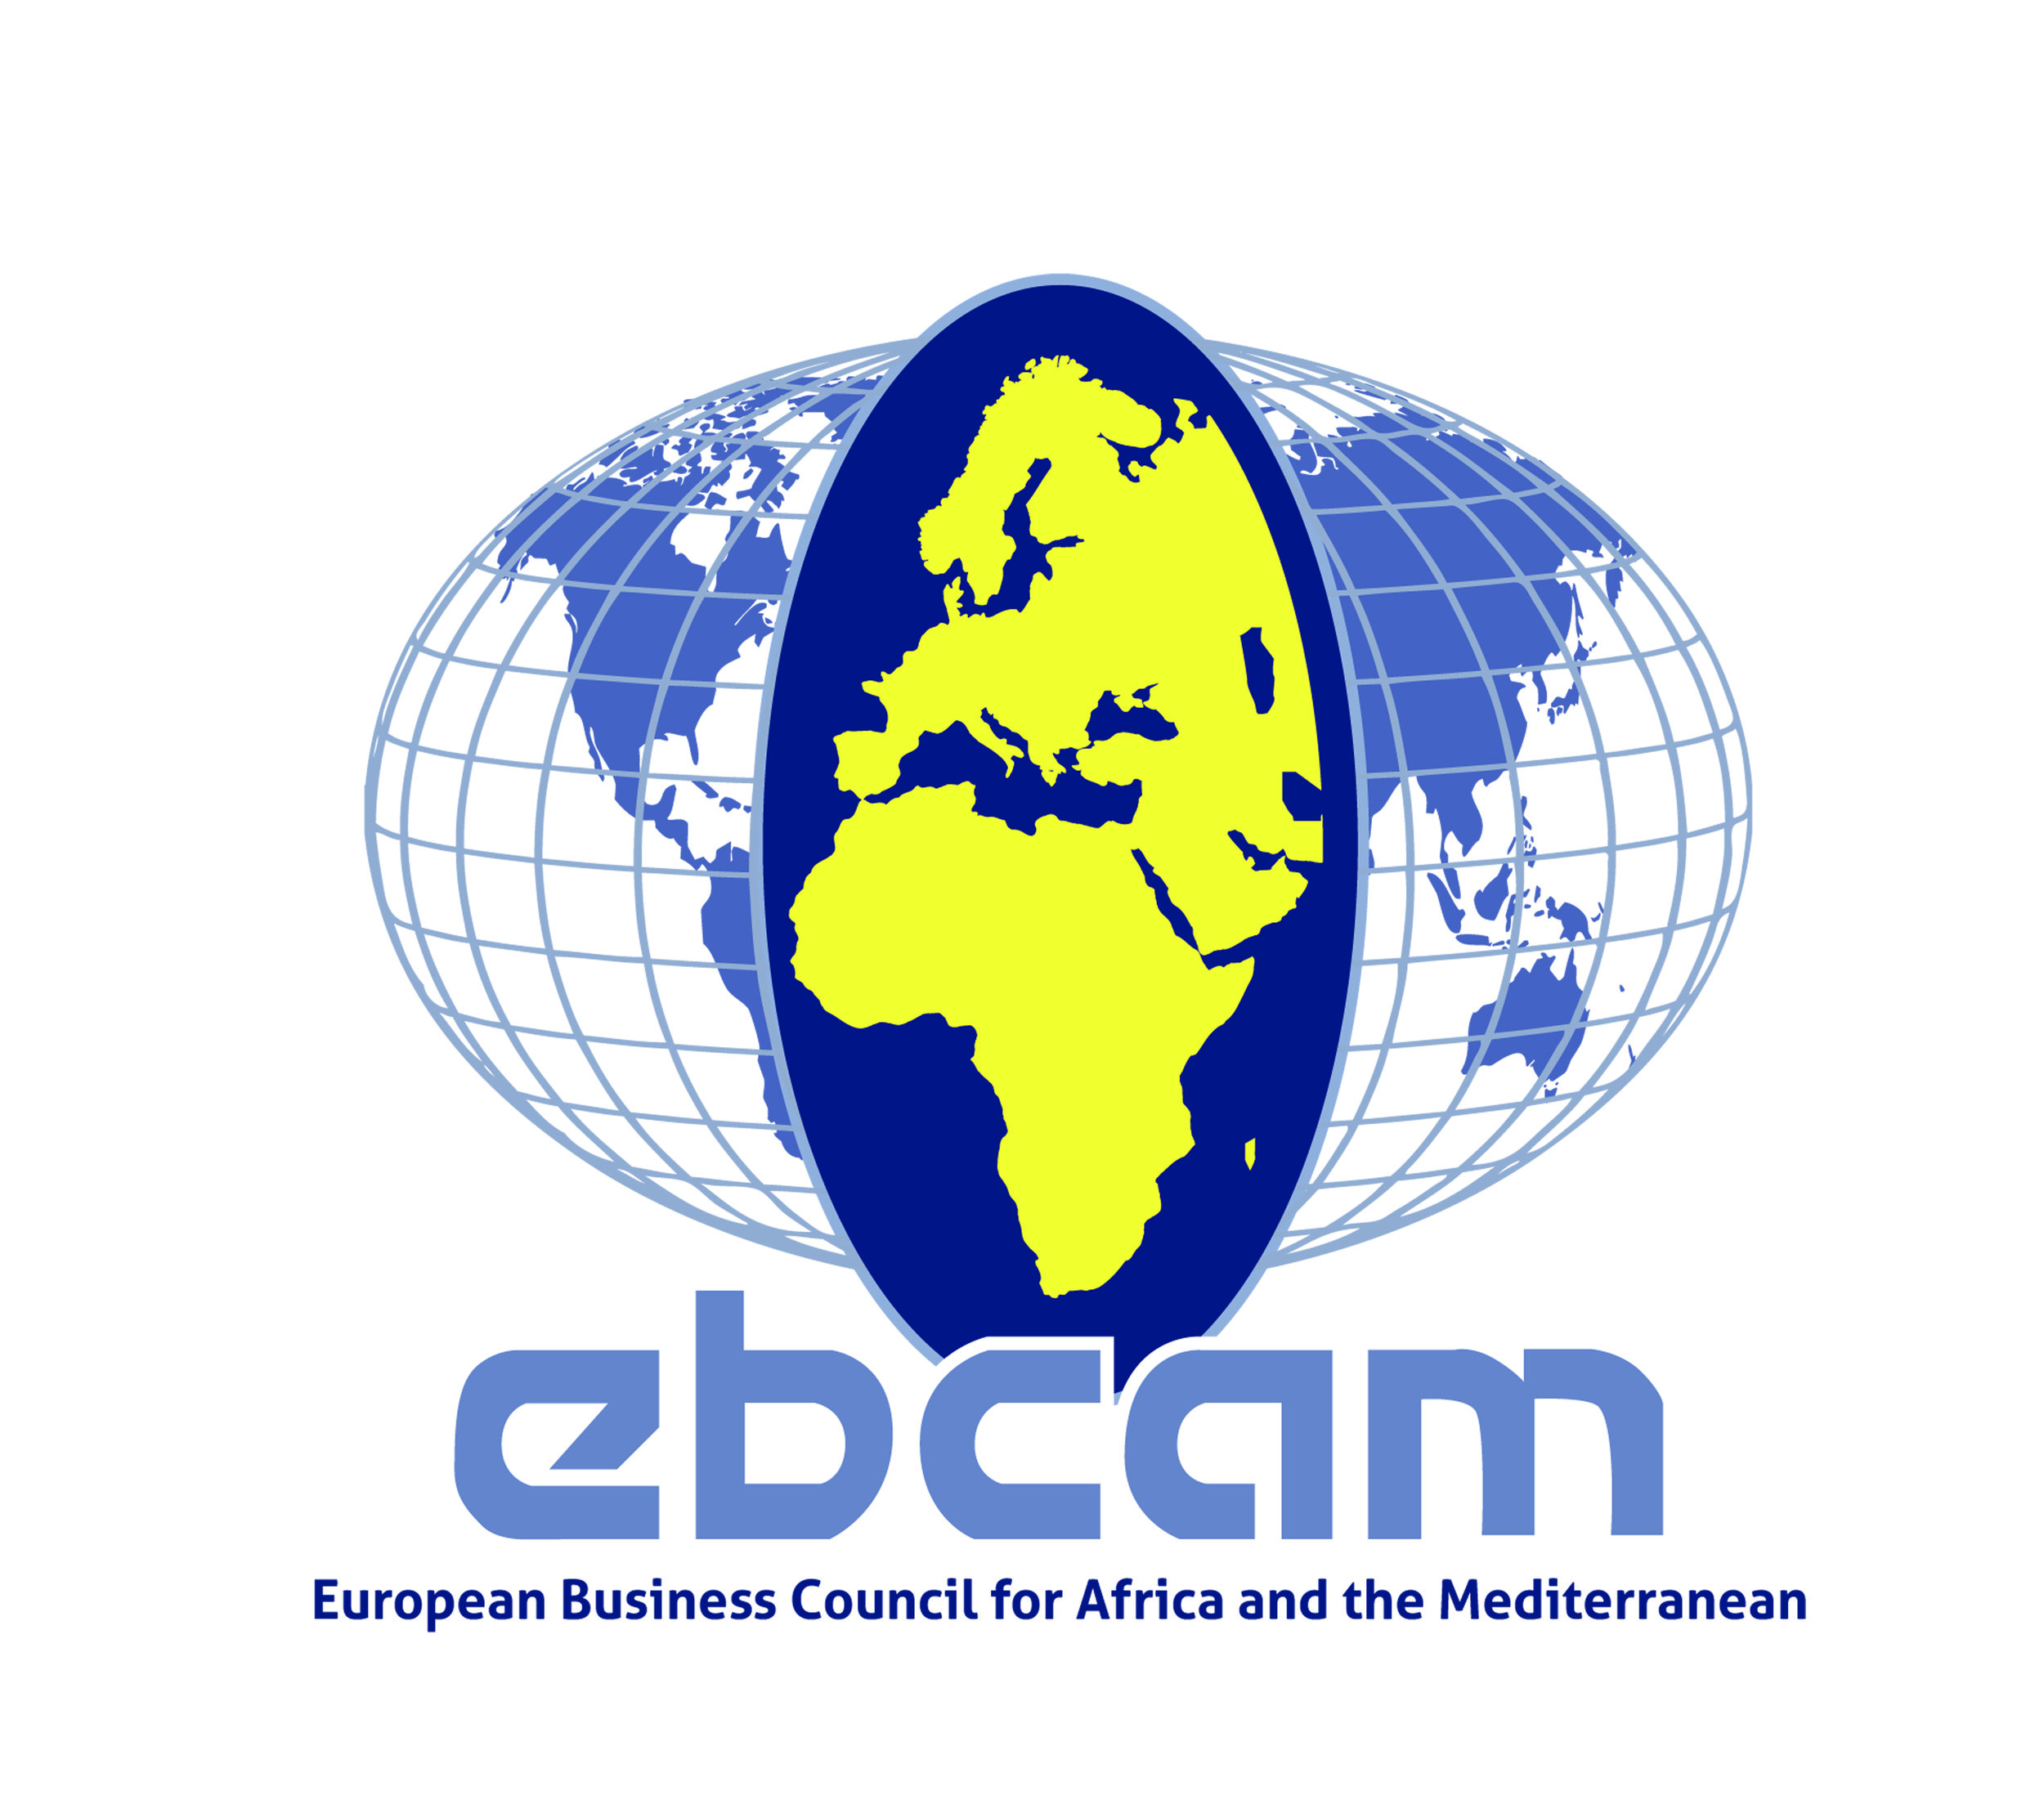 The European Business Council for Africa